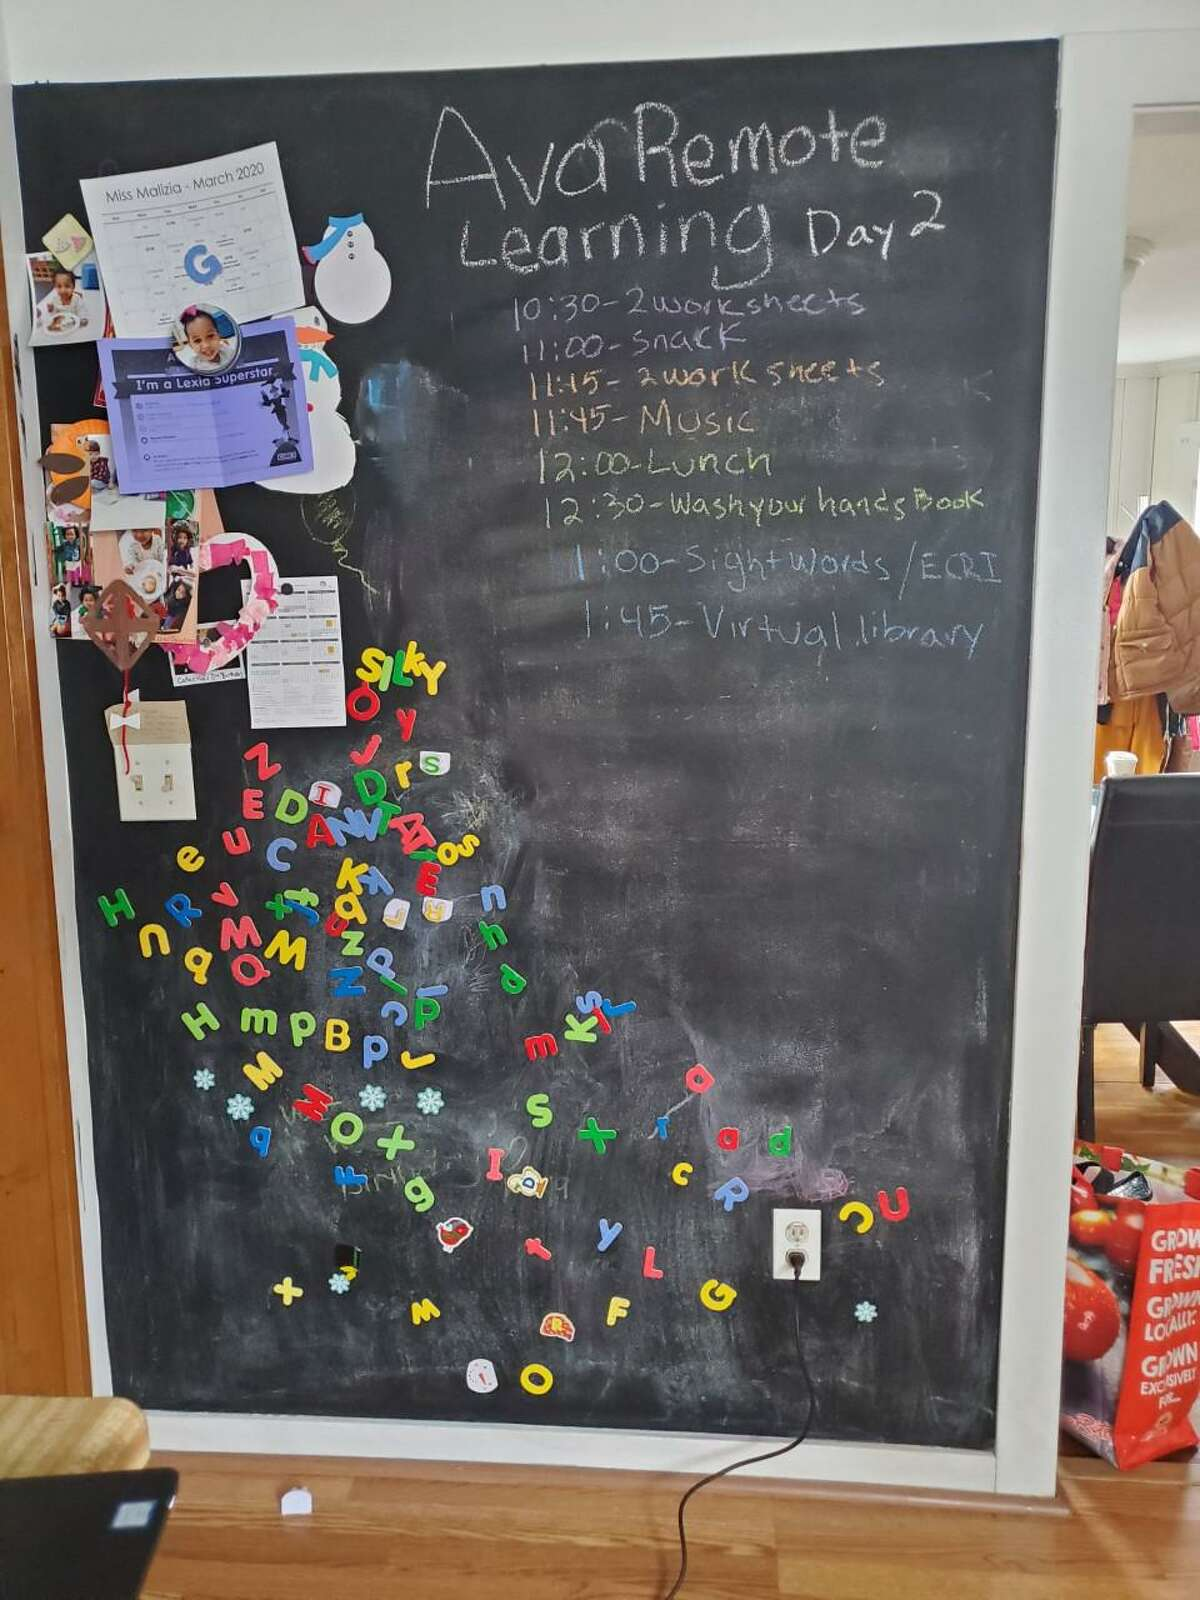 One Norwalk family created a plan for the day on their home blackboard.